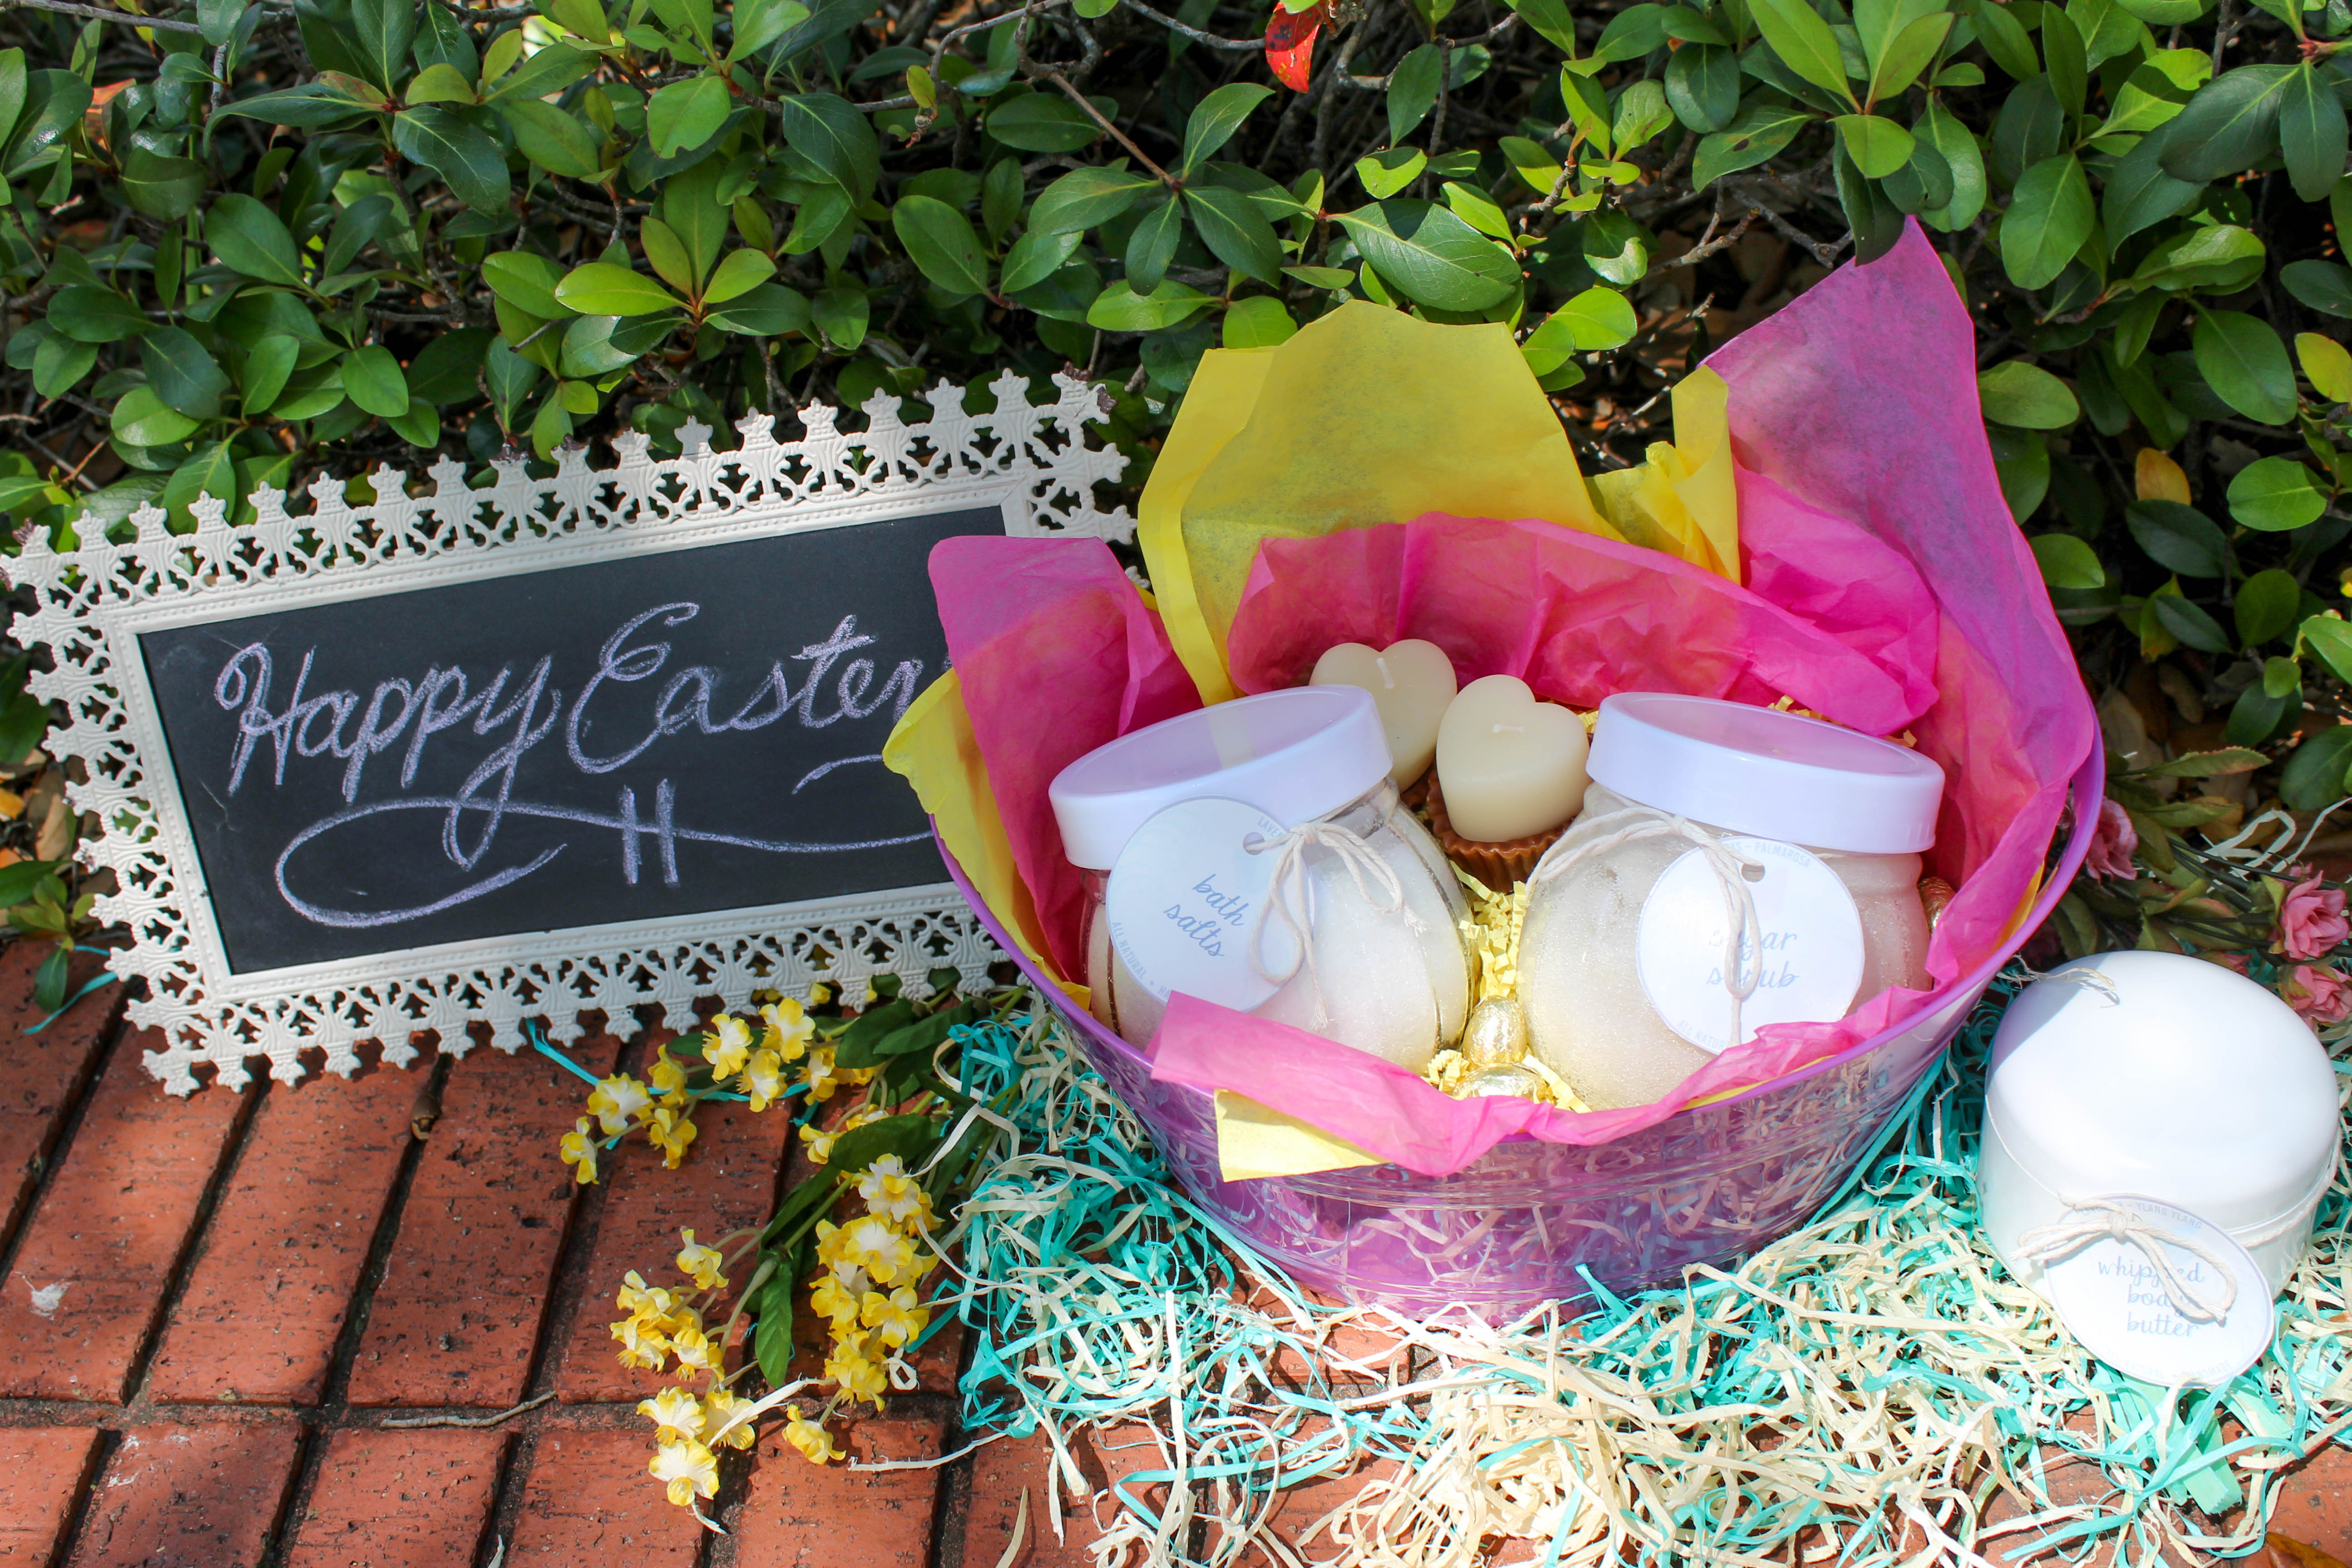 Not your ordinary easter basket ideas xo ashley who says affordable cant be adorable especially when its homemade line a pretty basket with colorful tissue paper and fill it with heavenly scented negle Gallery